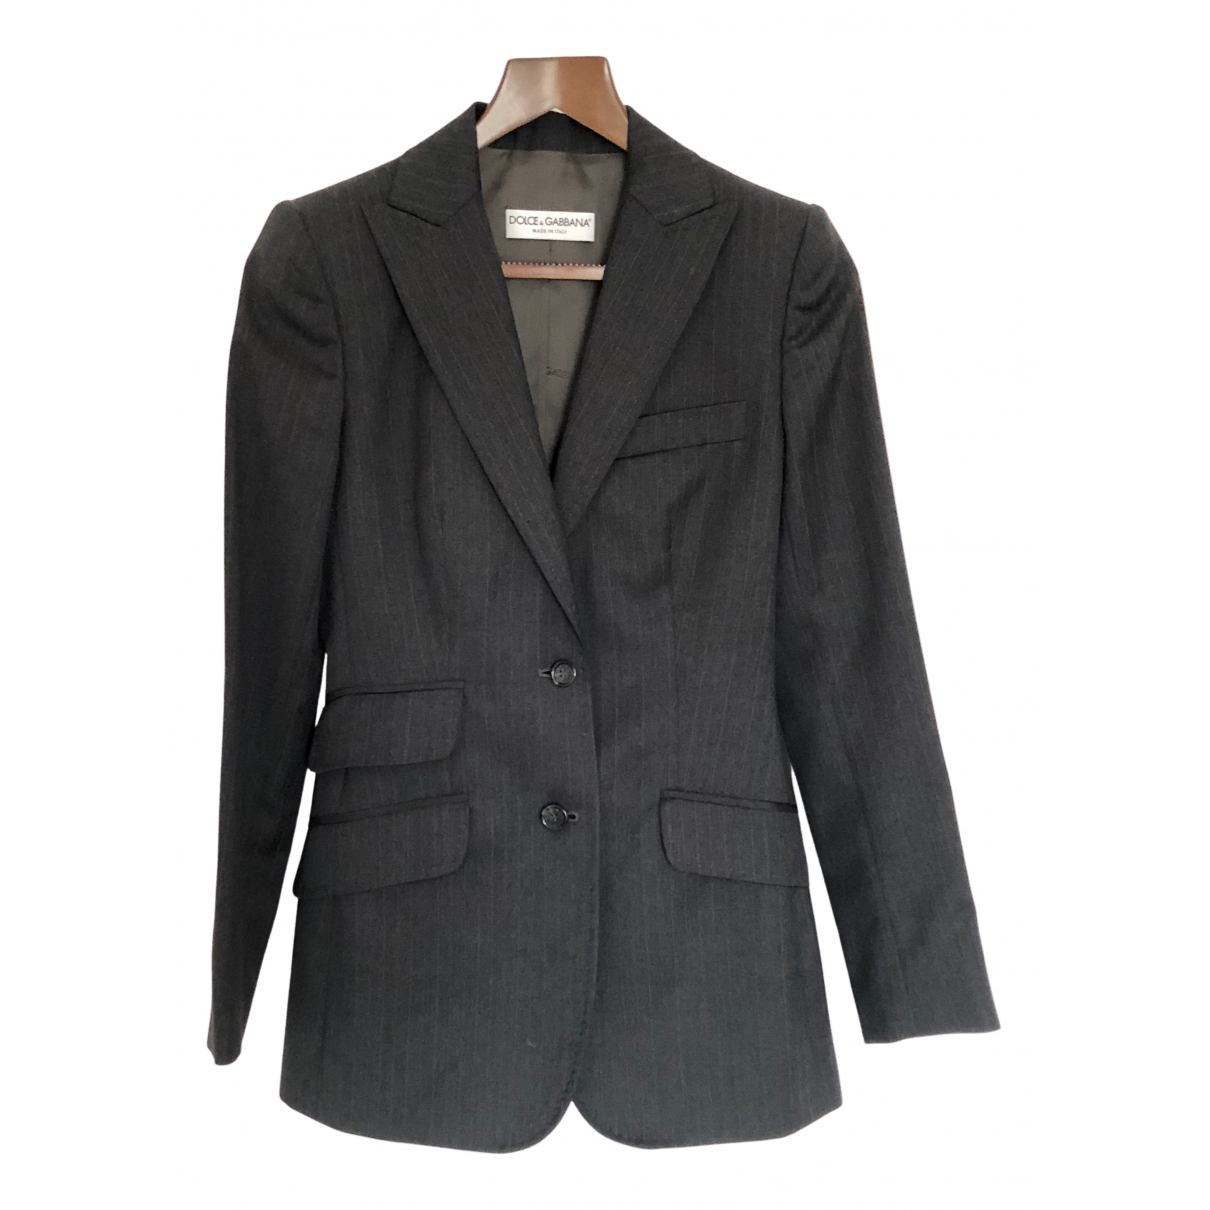 Dolce & Gabbana N Anthracite Wool jacket for Women 38 IT